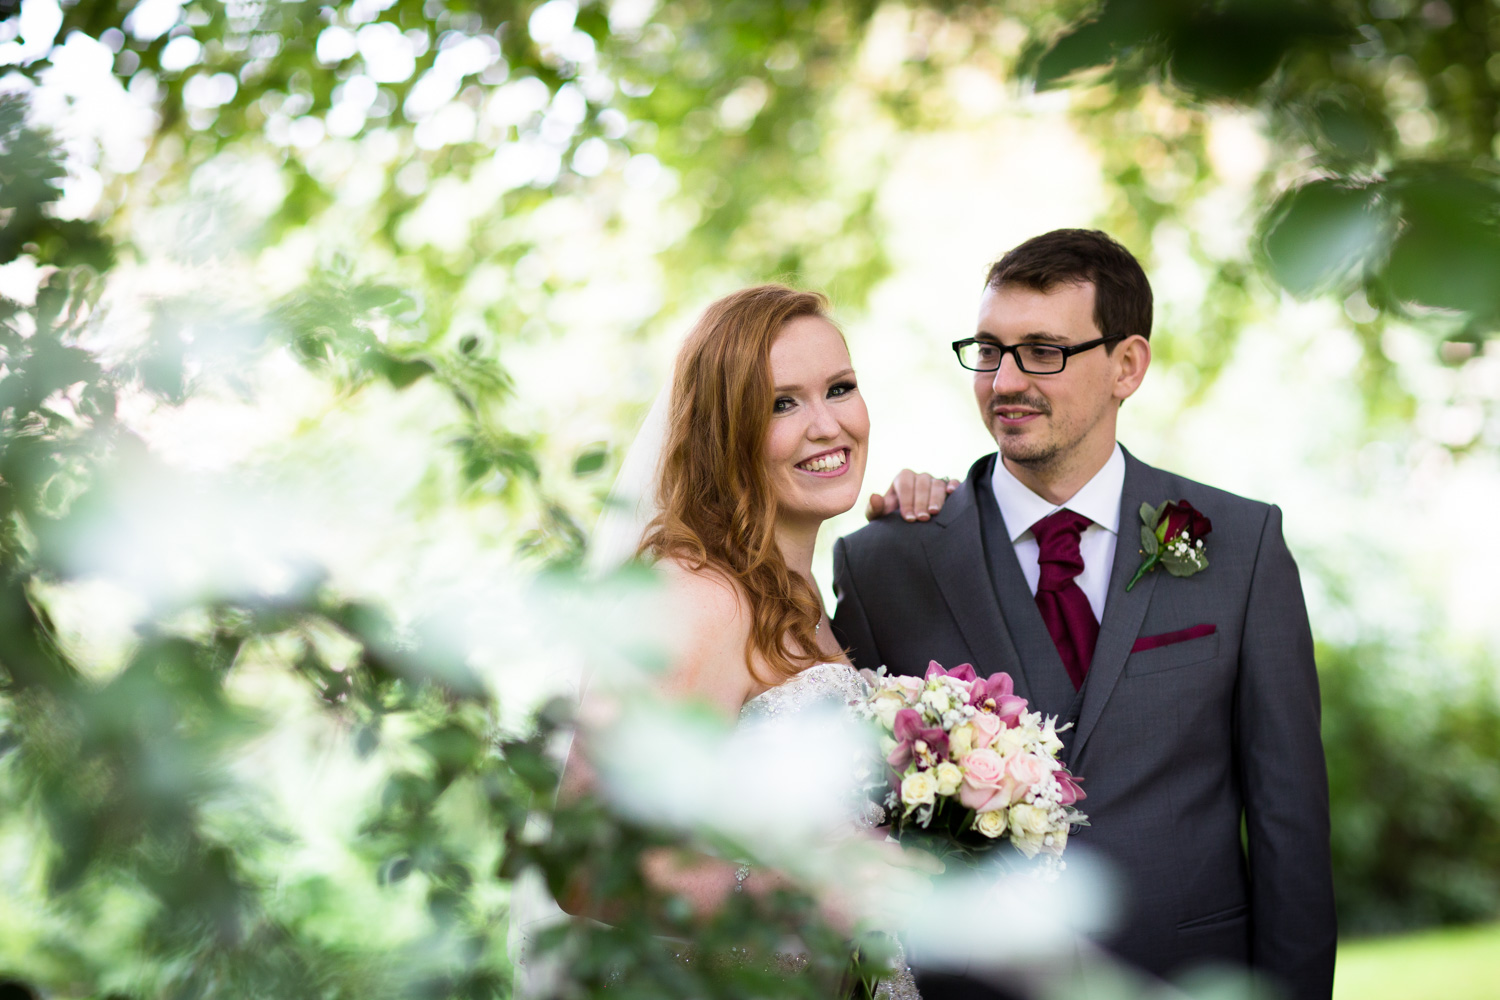 Mark_Barnes_Bristol_Wedding_Photographer_The_Square_Hotel_Bristol_wedding_photography-34.jpg